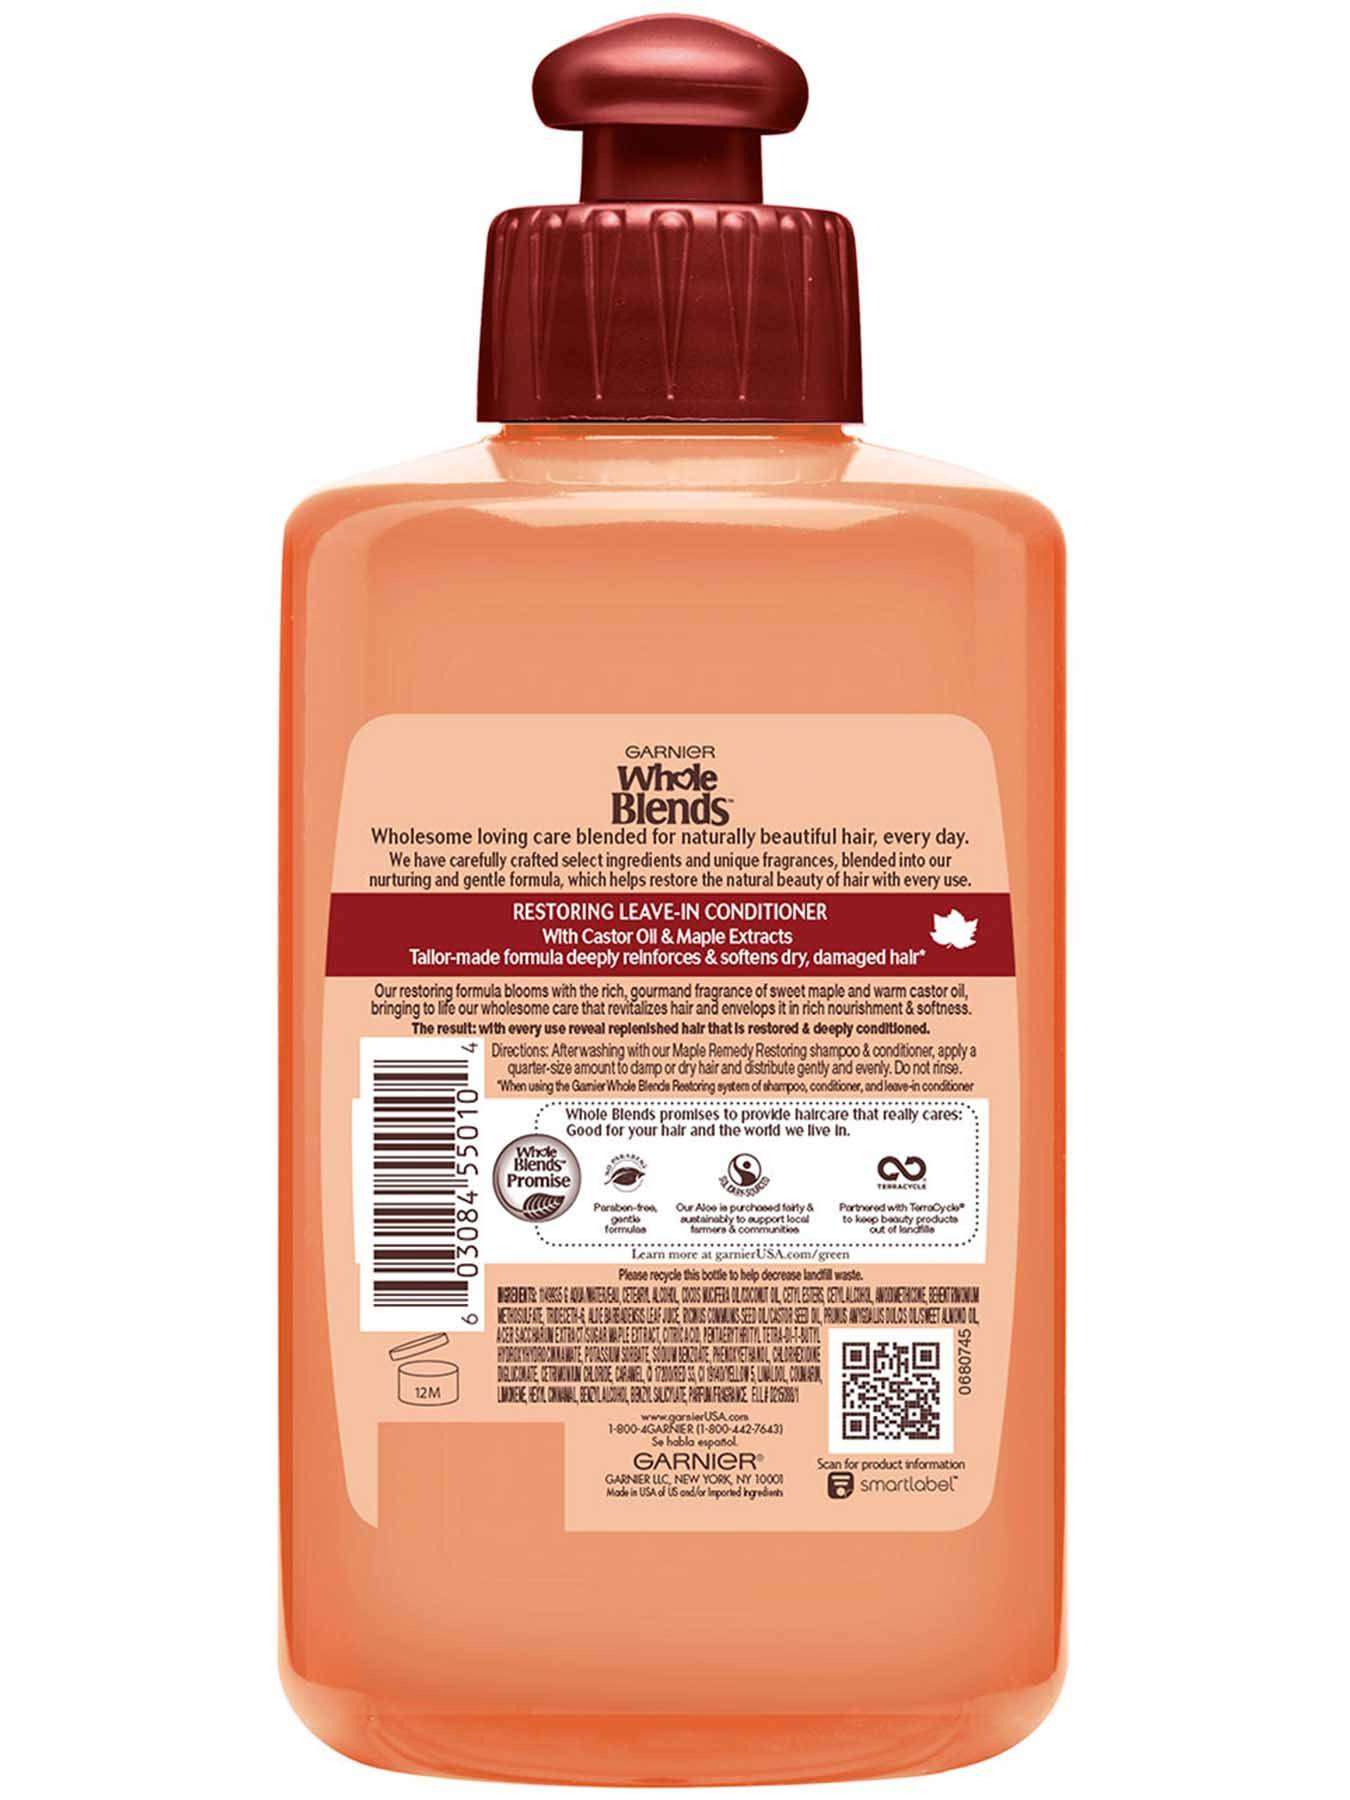 Garnier Whole Blends Castor Oil and Maple Extracts back of leave in conditioner